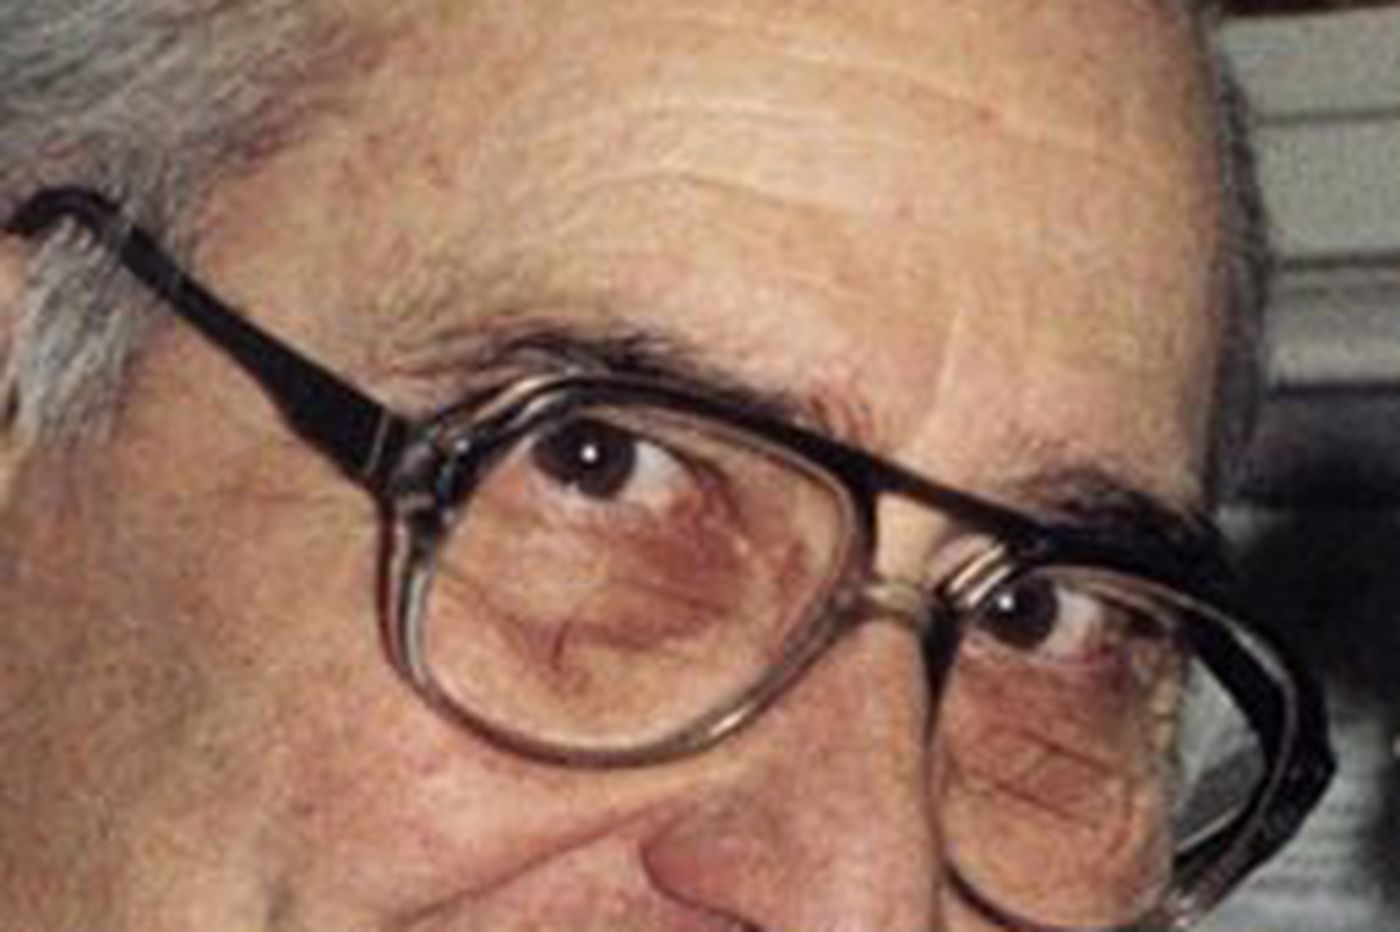 Dr. Manuel Bergnes, 93, retired pathologist